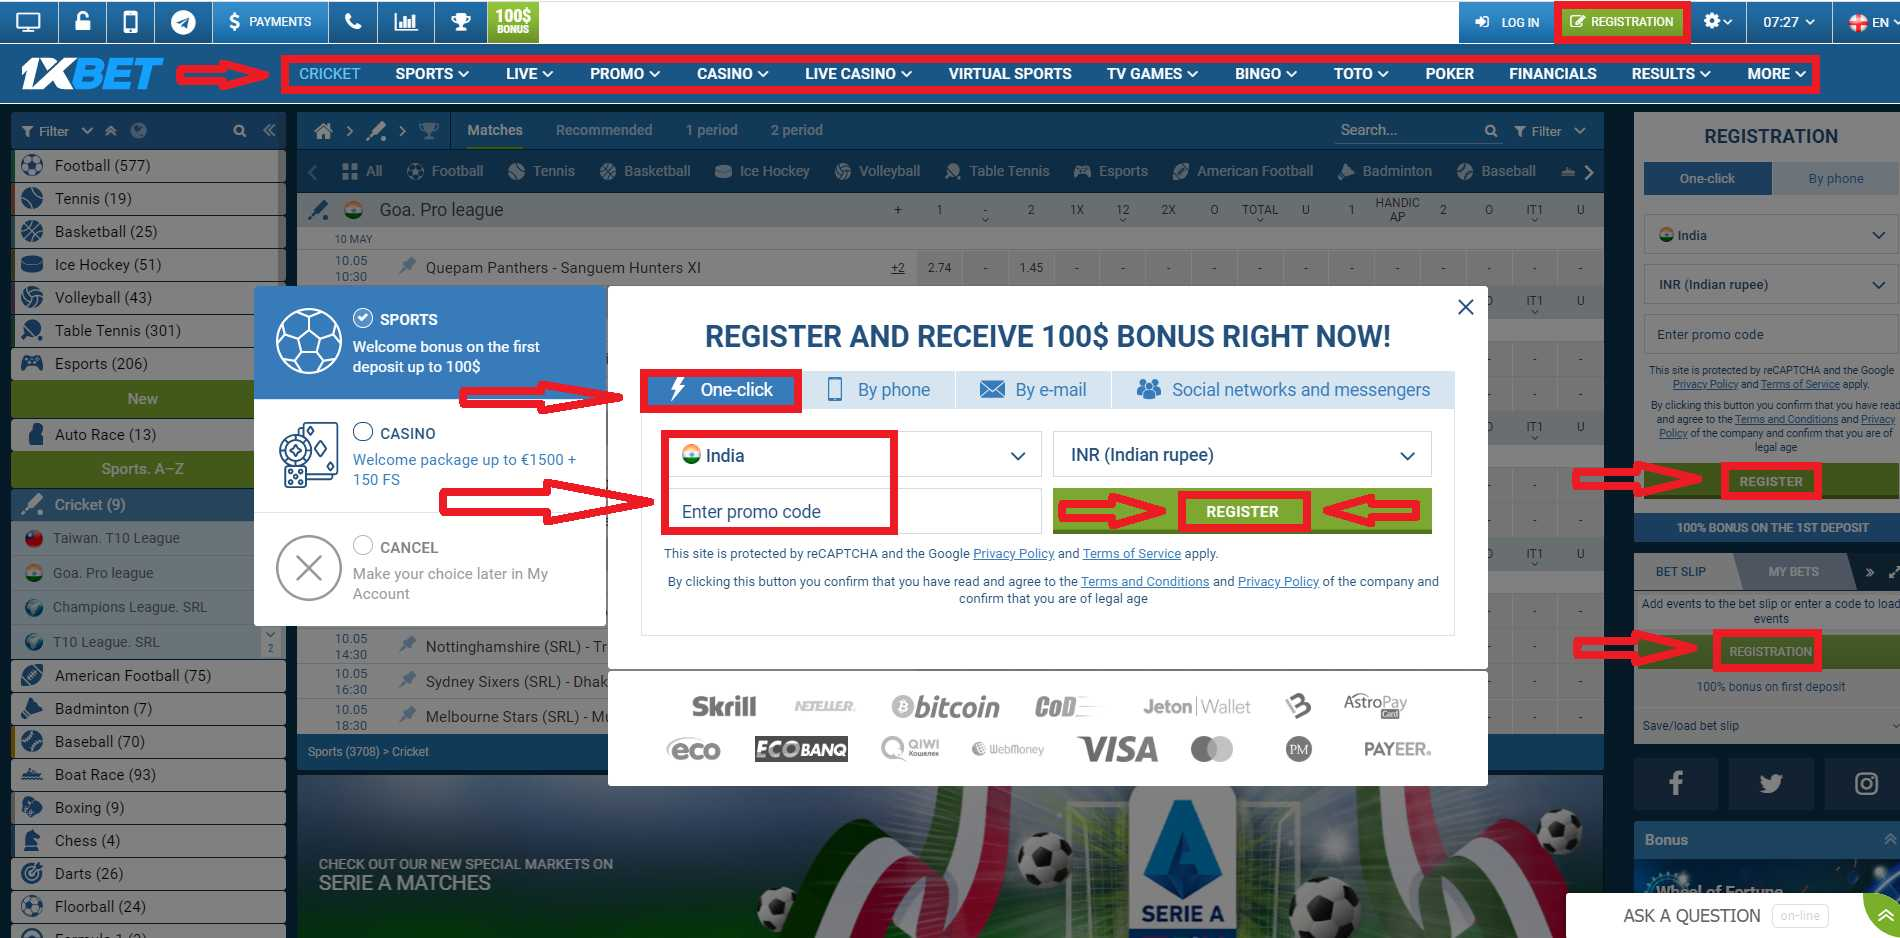 Find Out How to Register on 1xBet via SMS